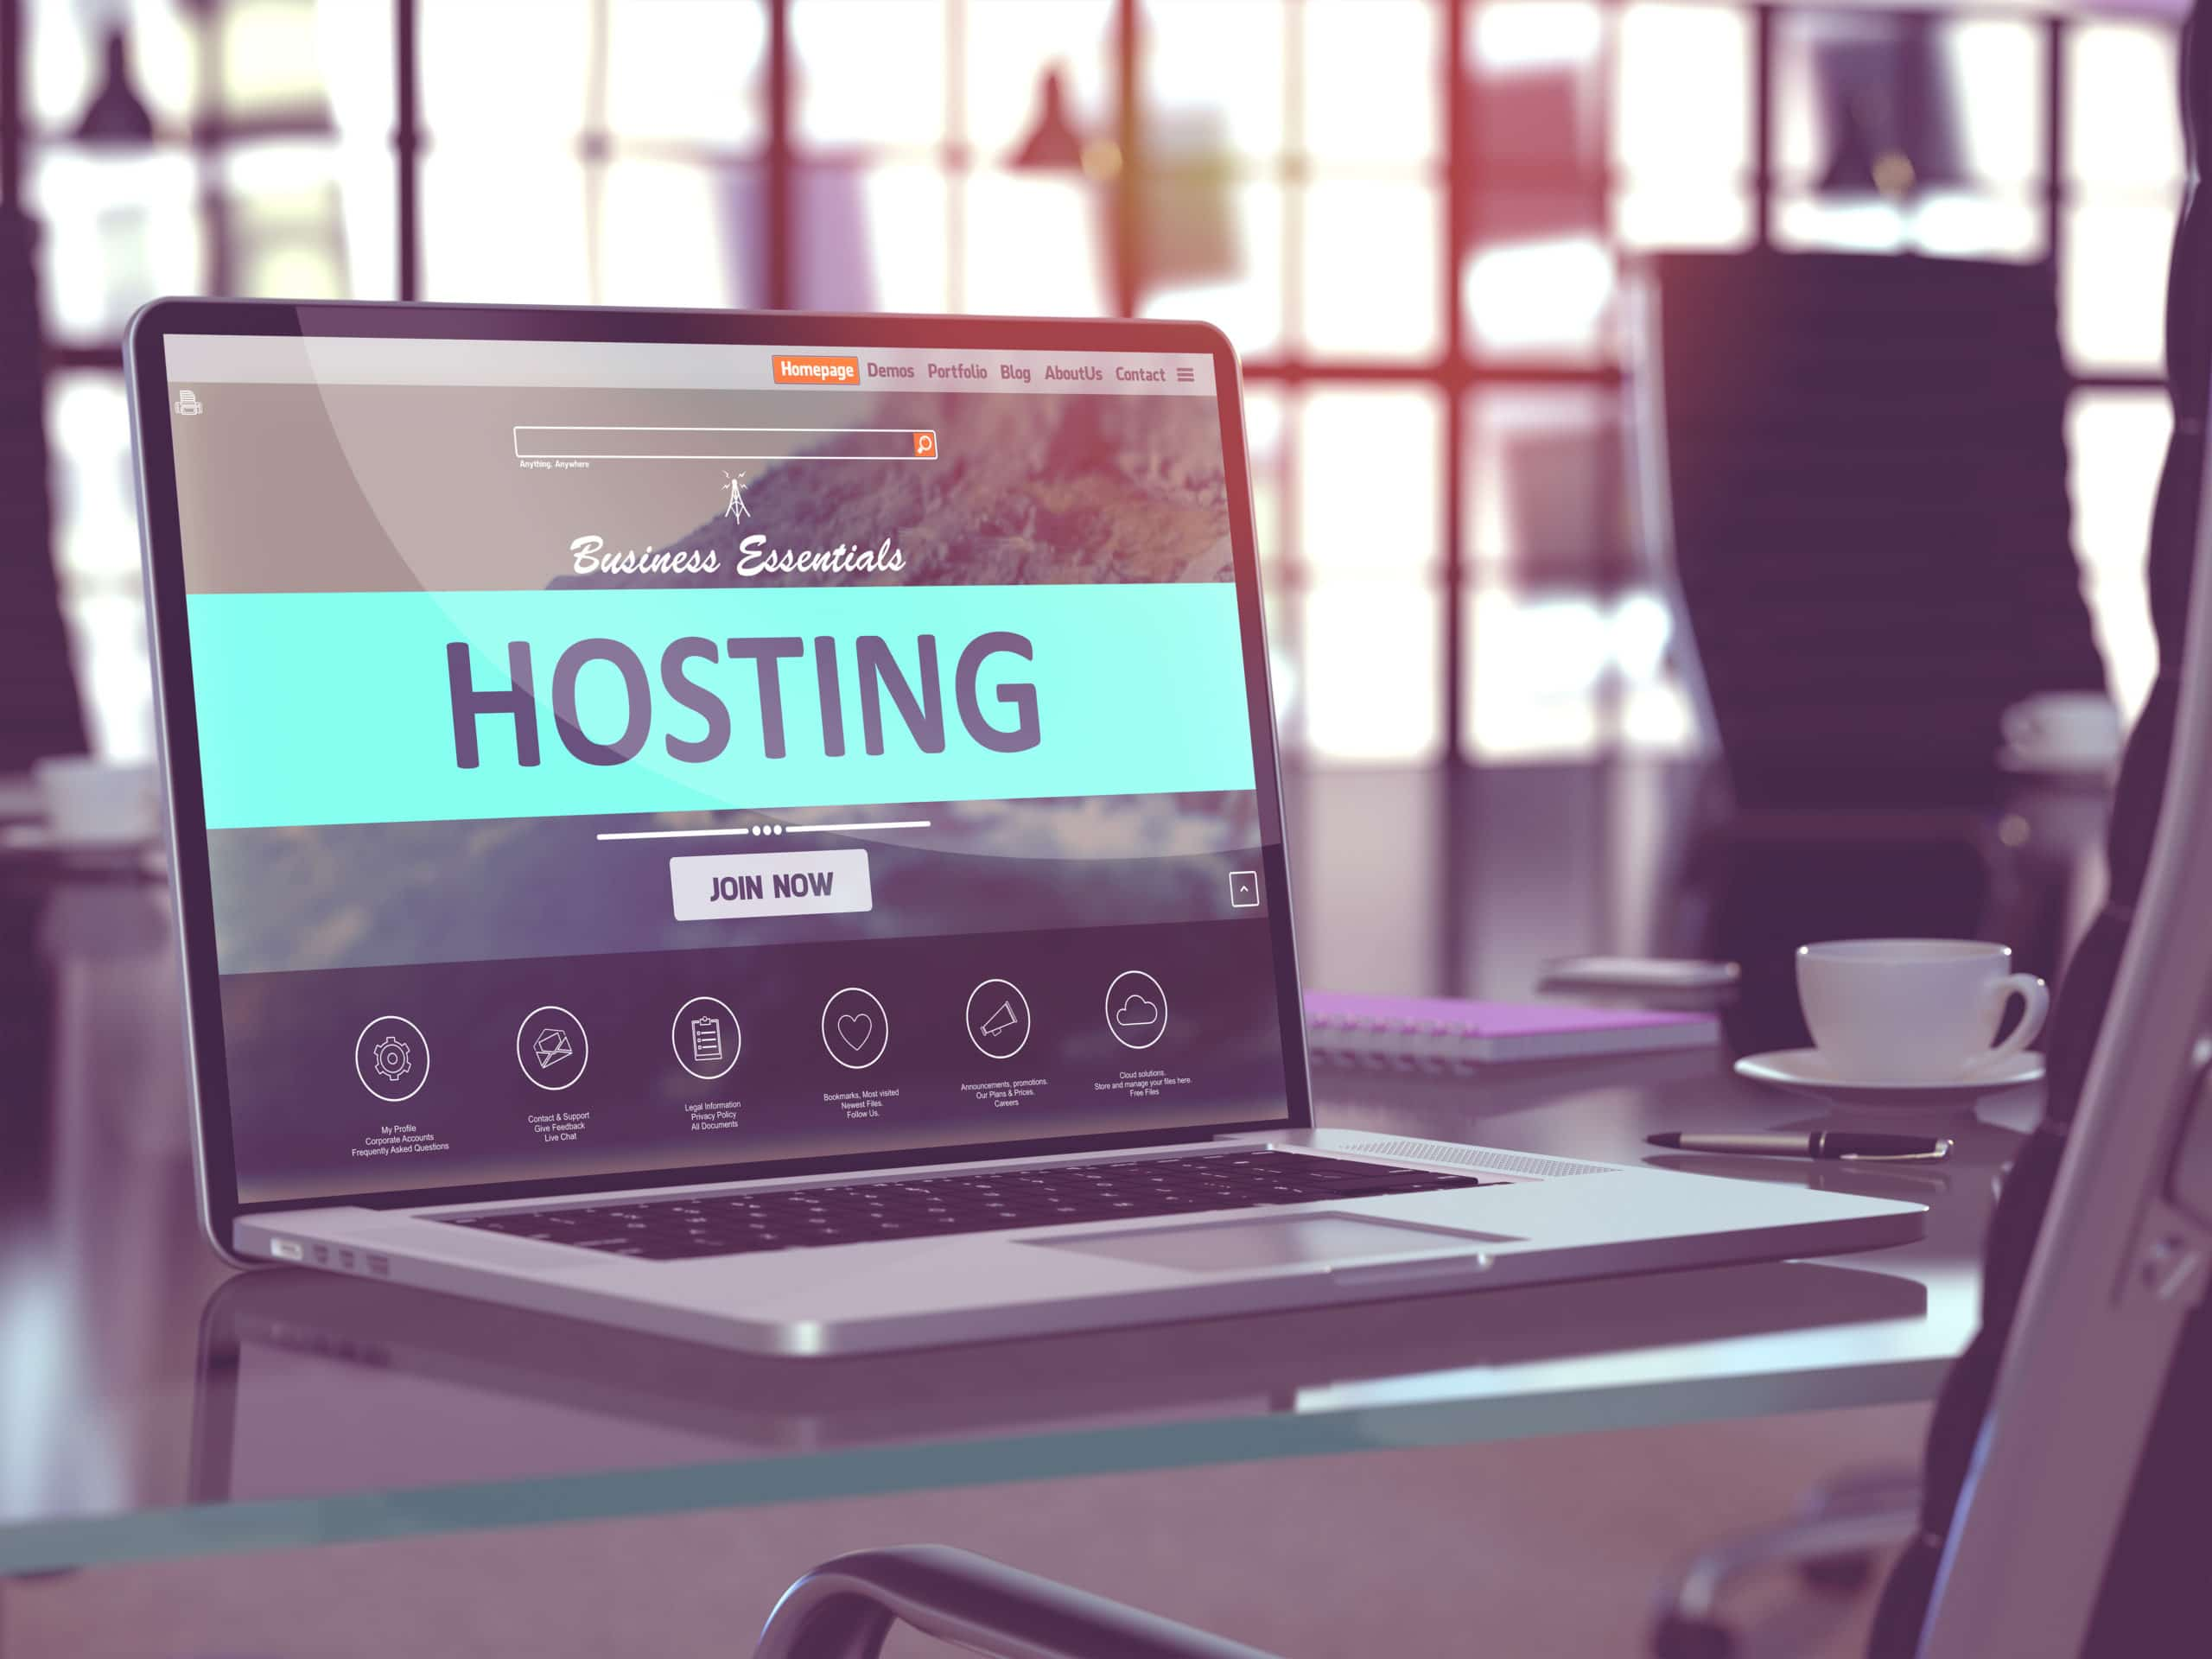 That free hosting service might be costing you more than you think